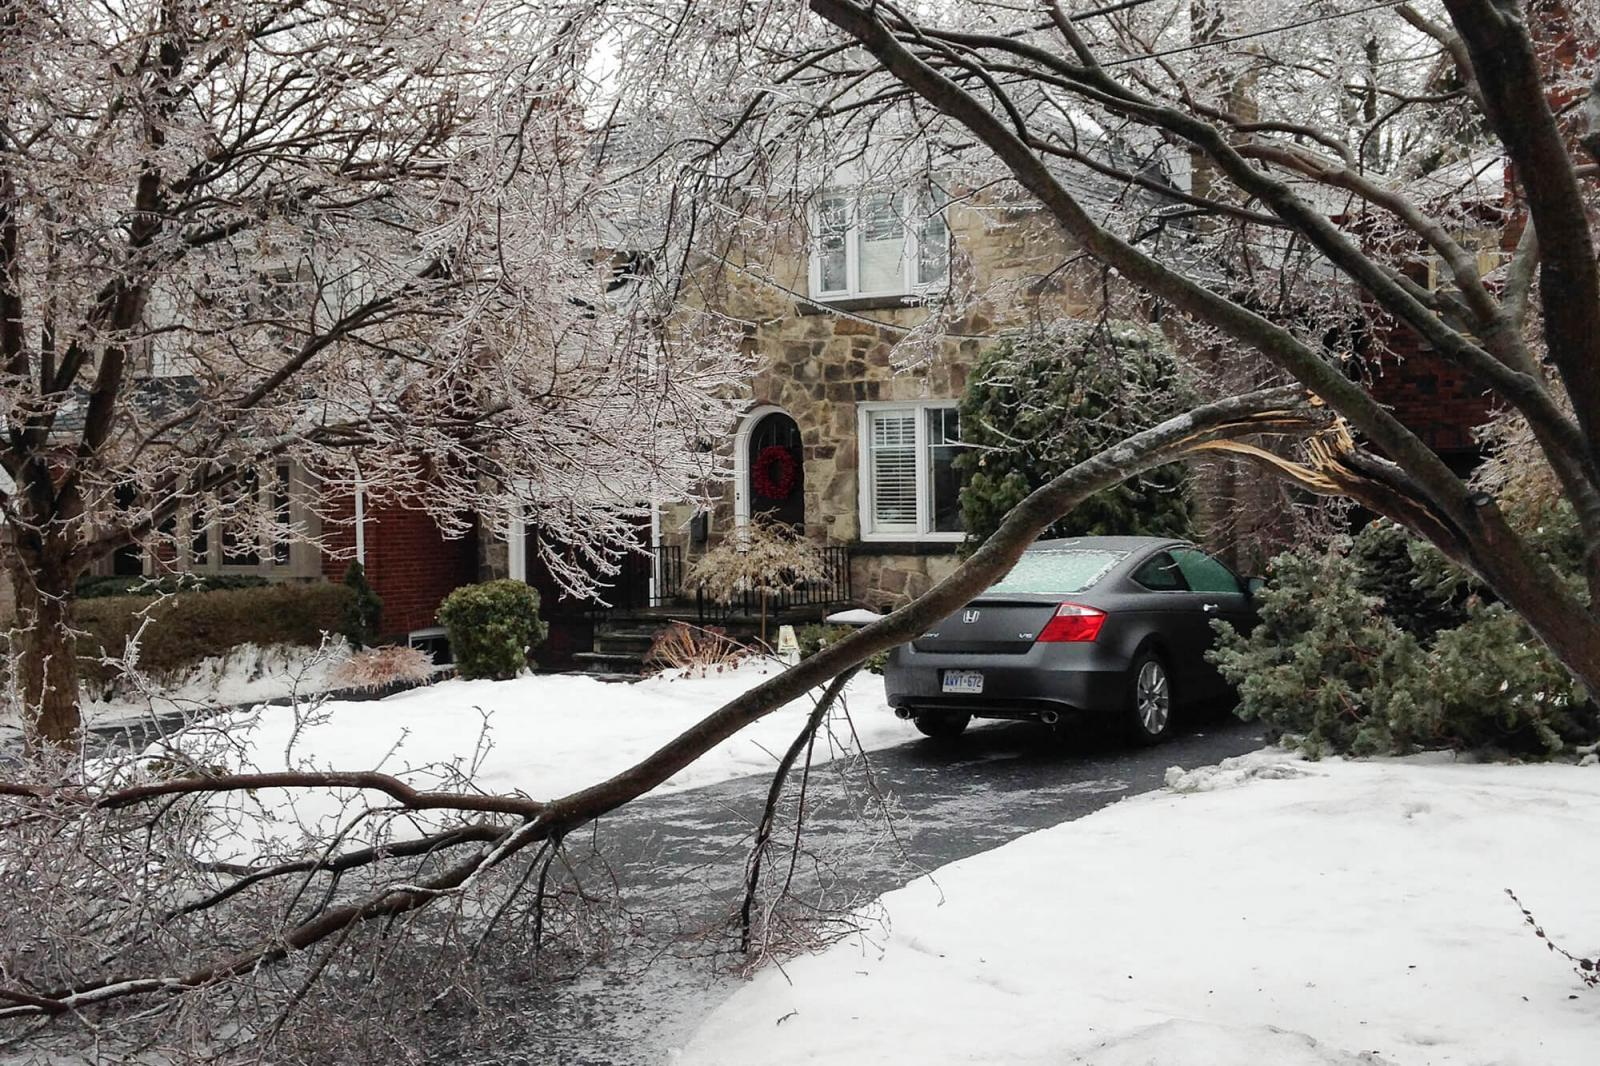 Ice storm may benefit trees